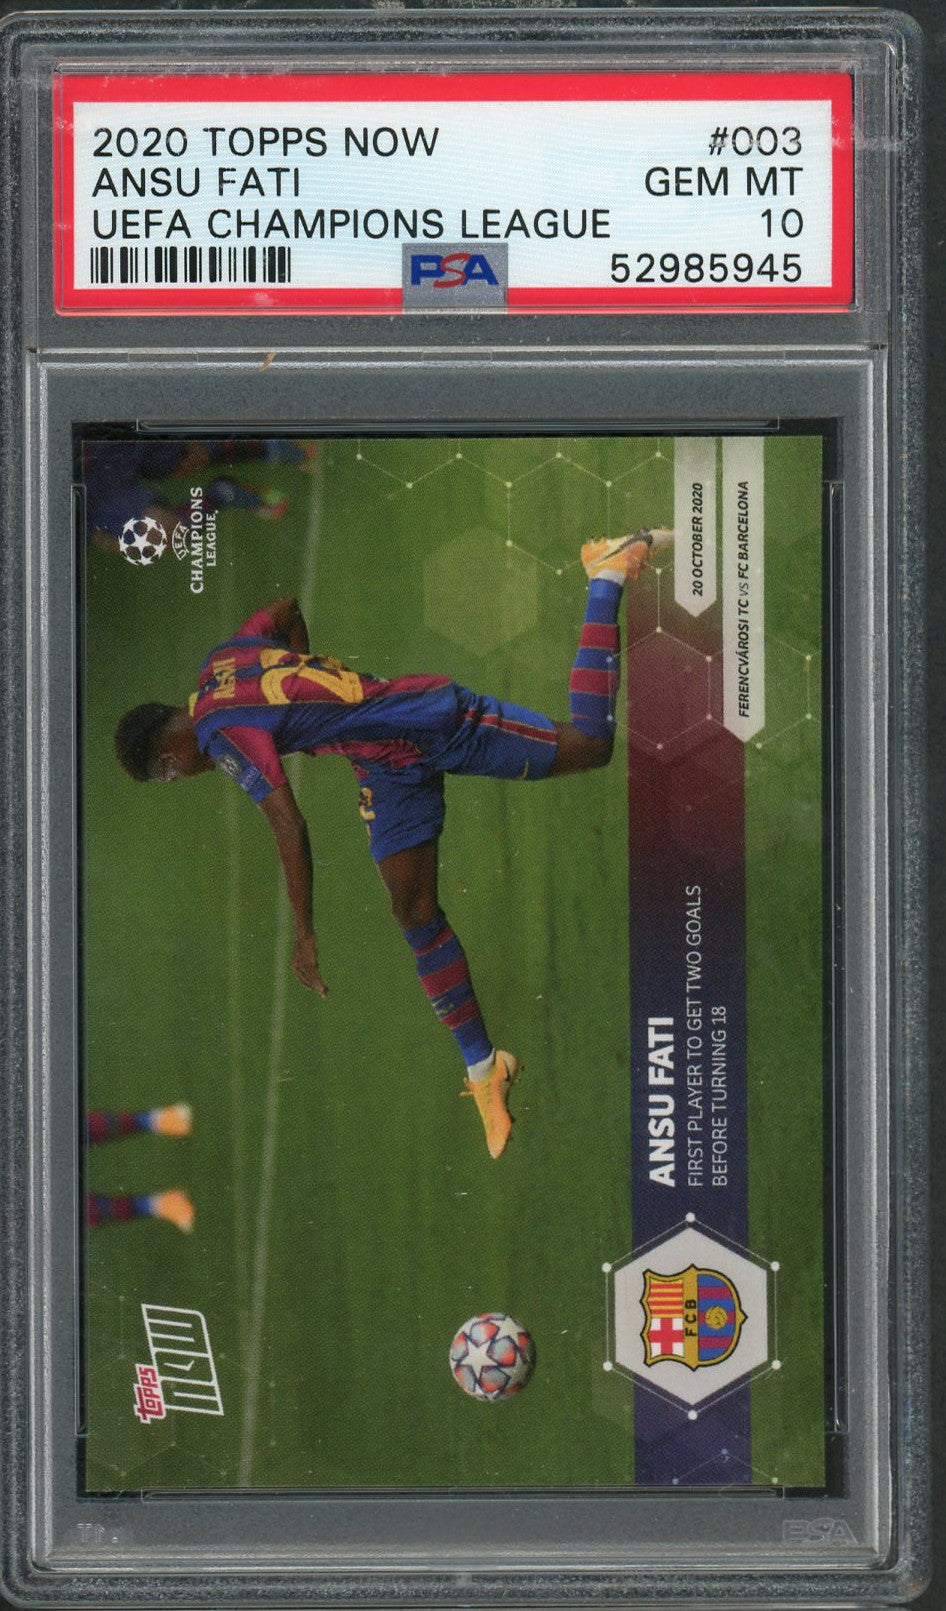 Ansu Fati FC Barcelona 2020 Topps Now UEFA Champions League Soccer Rookie Card RC #003 Graded PSA 10 GEM MINT-Powers Sports Memorabilia